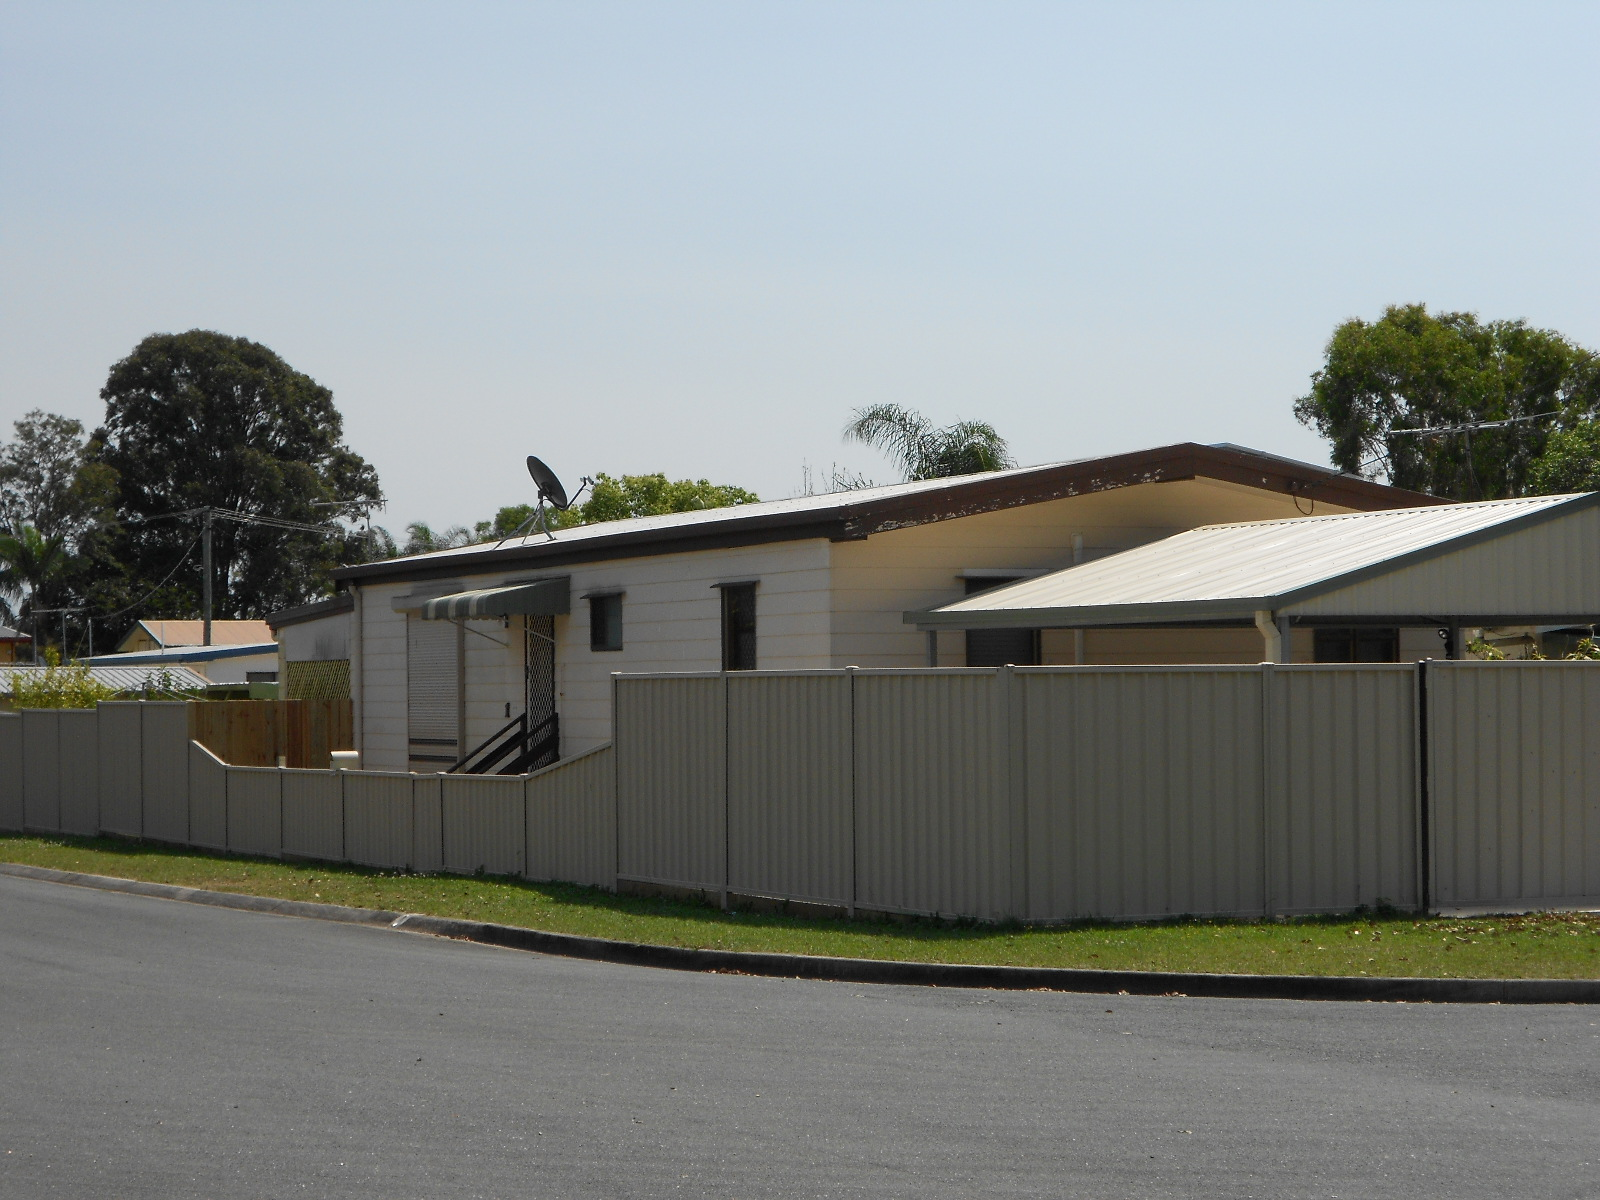 """First Home Buyer. - It might not look like much, but this was my palace back in 2001.I'd taken the money I'd saved in my term deposit and combined it with the first home buyers grant to buy this 3 bedroom box (I mean house) in Deception Bay, Queensland.I hold fond memories of this era as my house was the """"go to"""" place where my friends and I would have BBQ's and party on Saturday nights.I bought the house across the road a mere 8 months late because the Deception Bay market had followed suit after neighbouring Redcliffe had boomed and the equity in my property allowed me to refinance with the bank and grow my portfolio."""